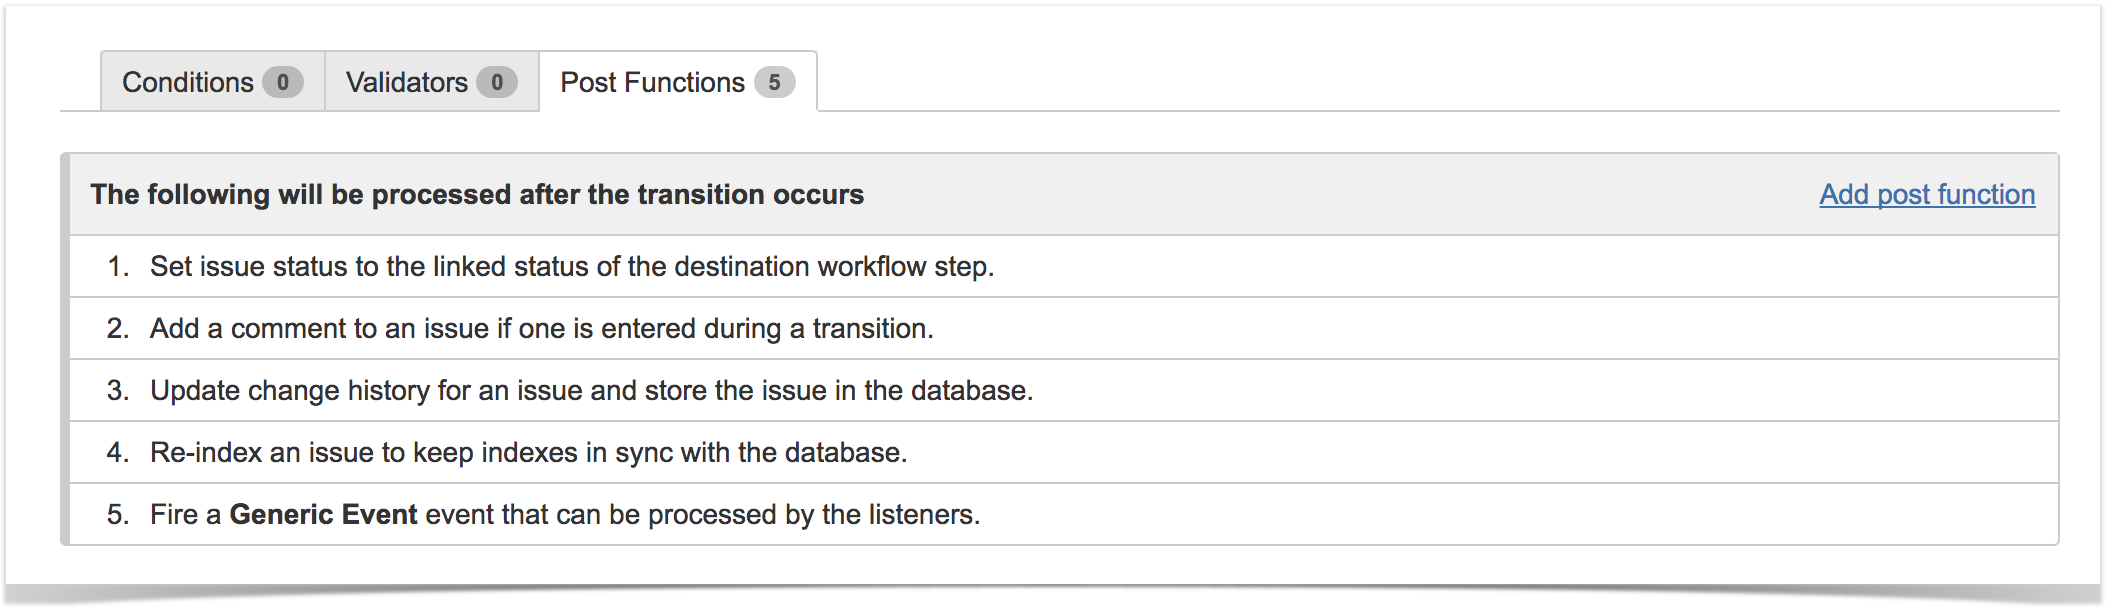 Assign to a user in a role post function - Enhancer Plugin for JIRA